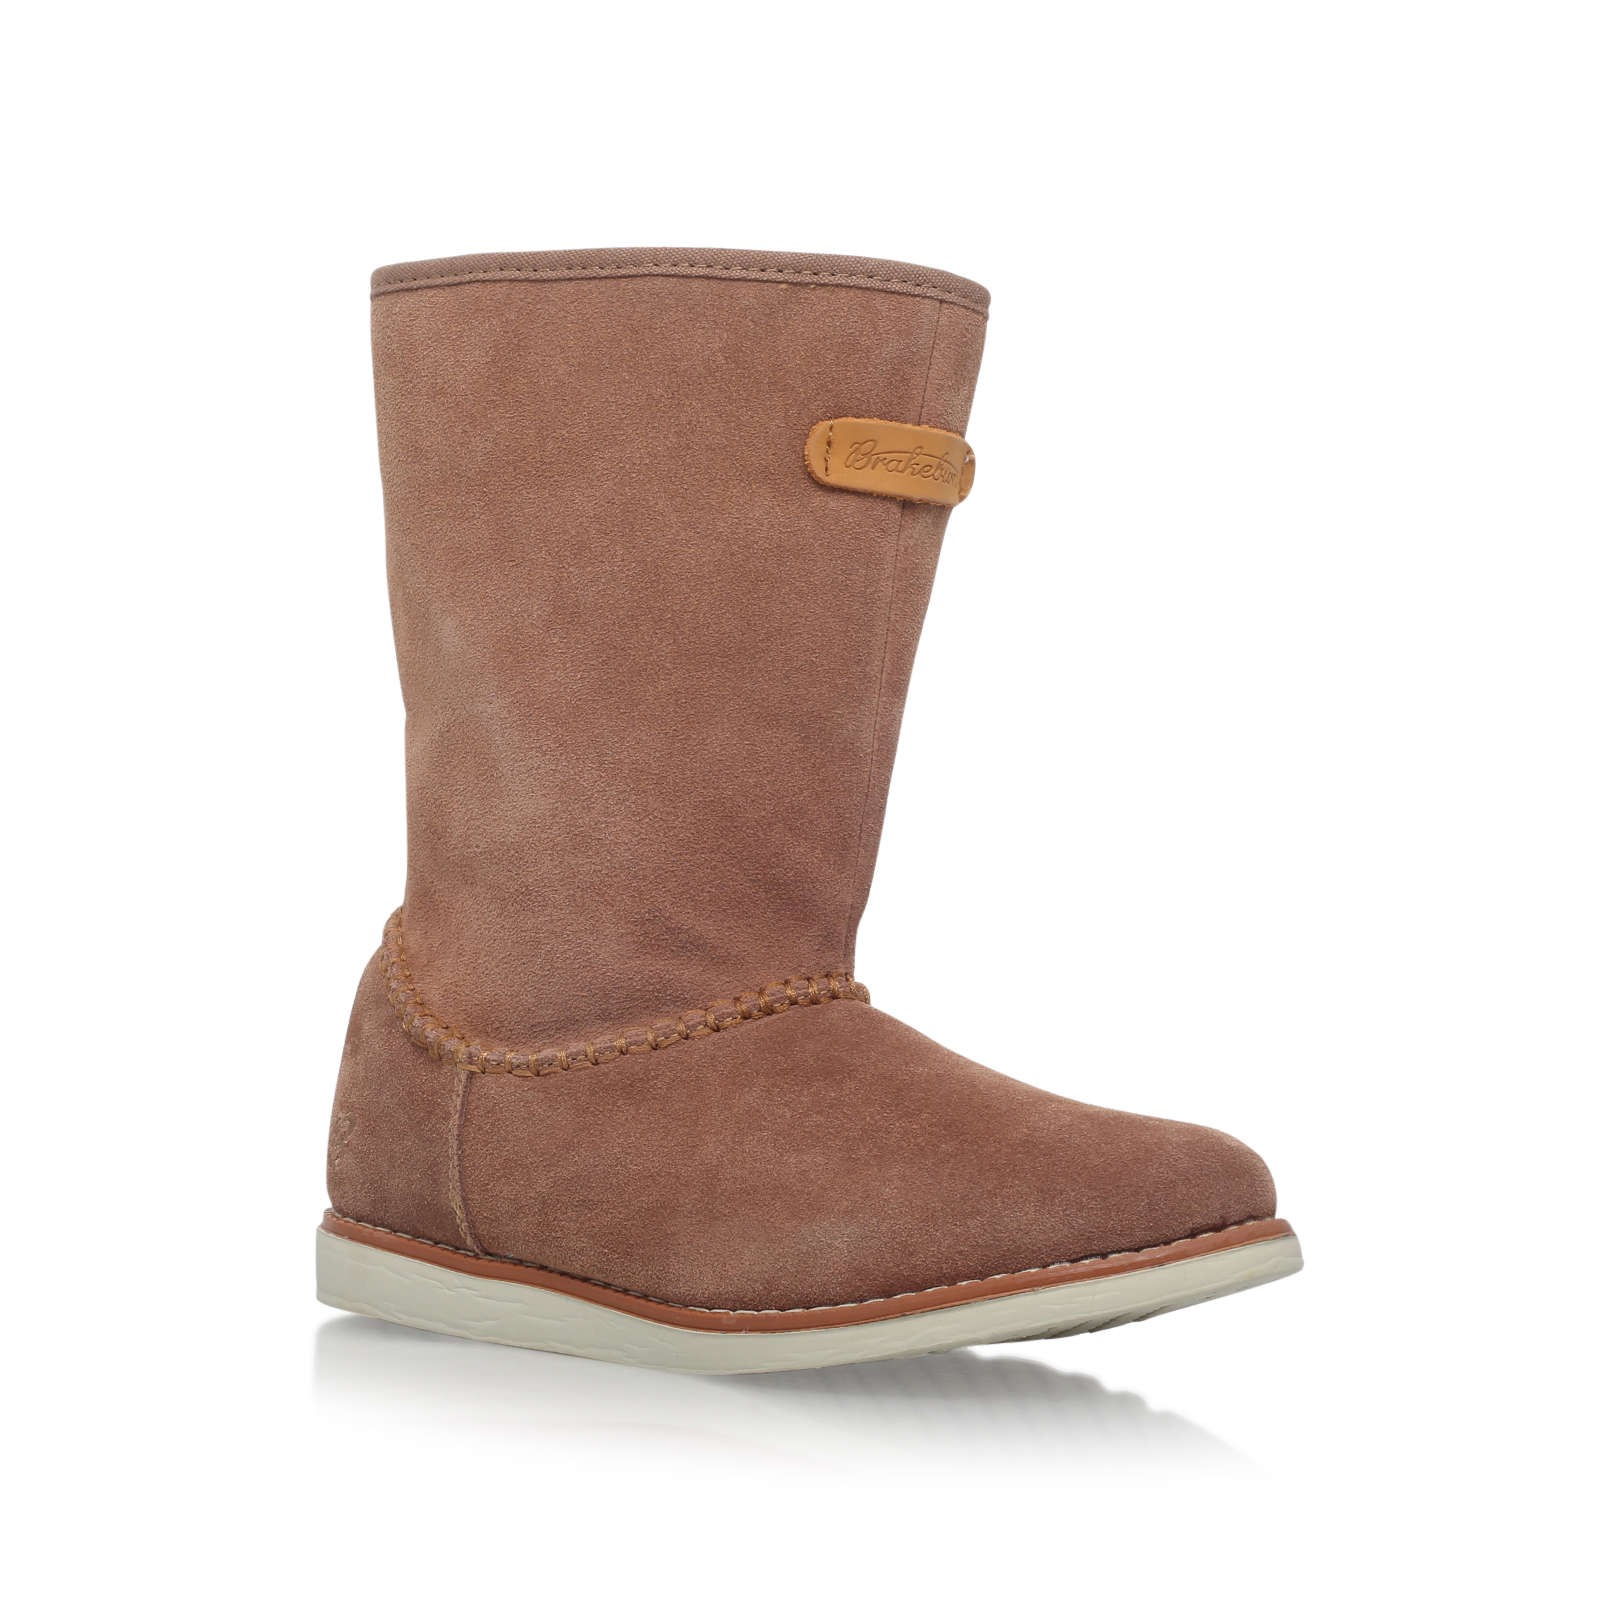 BB-HOPE COVE LADIES BOOT